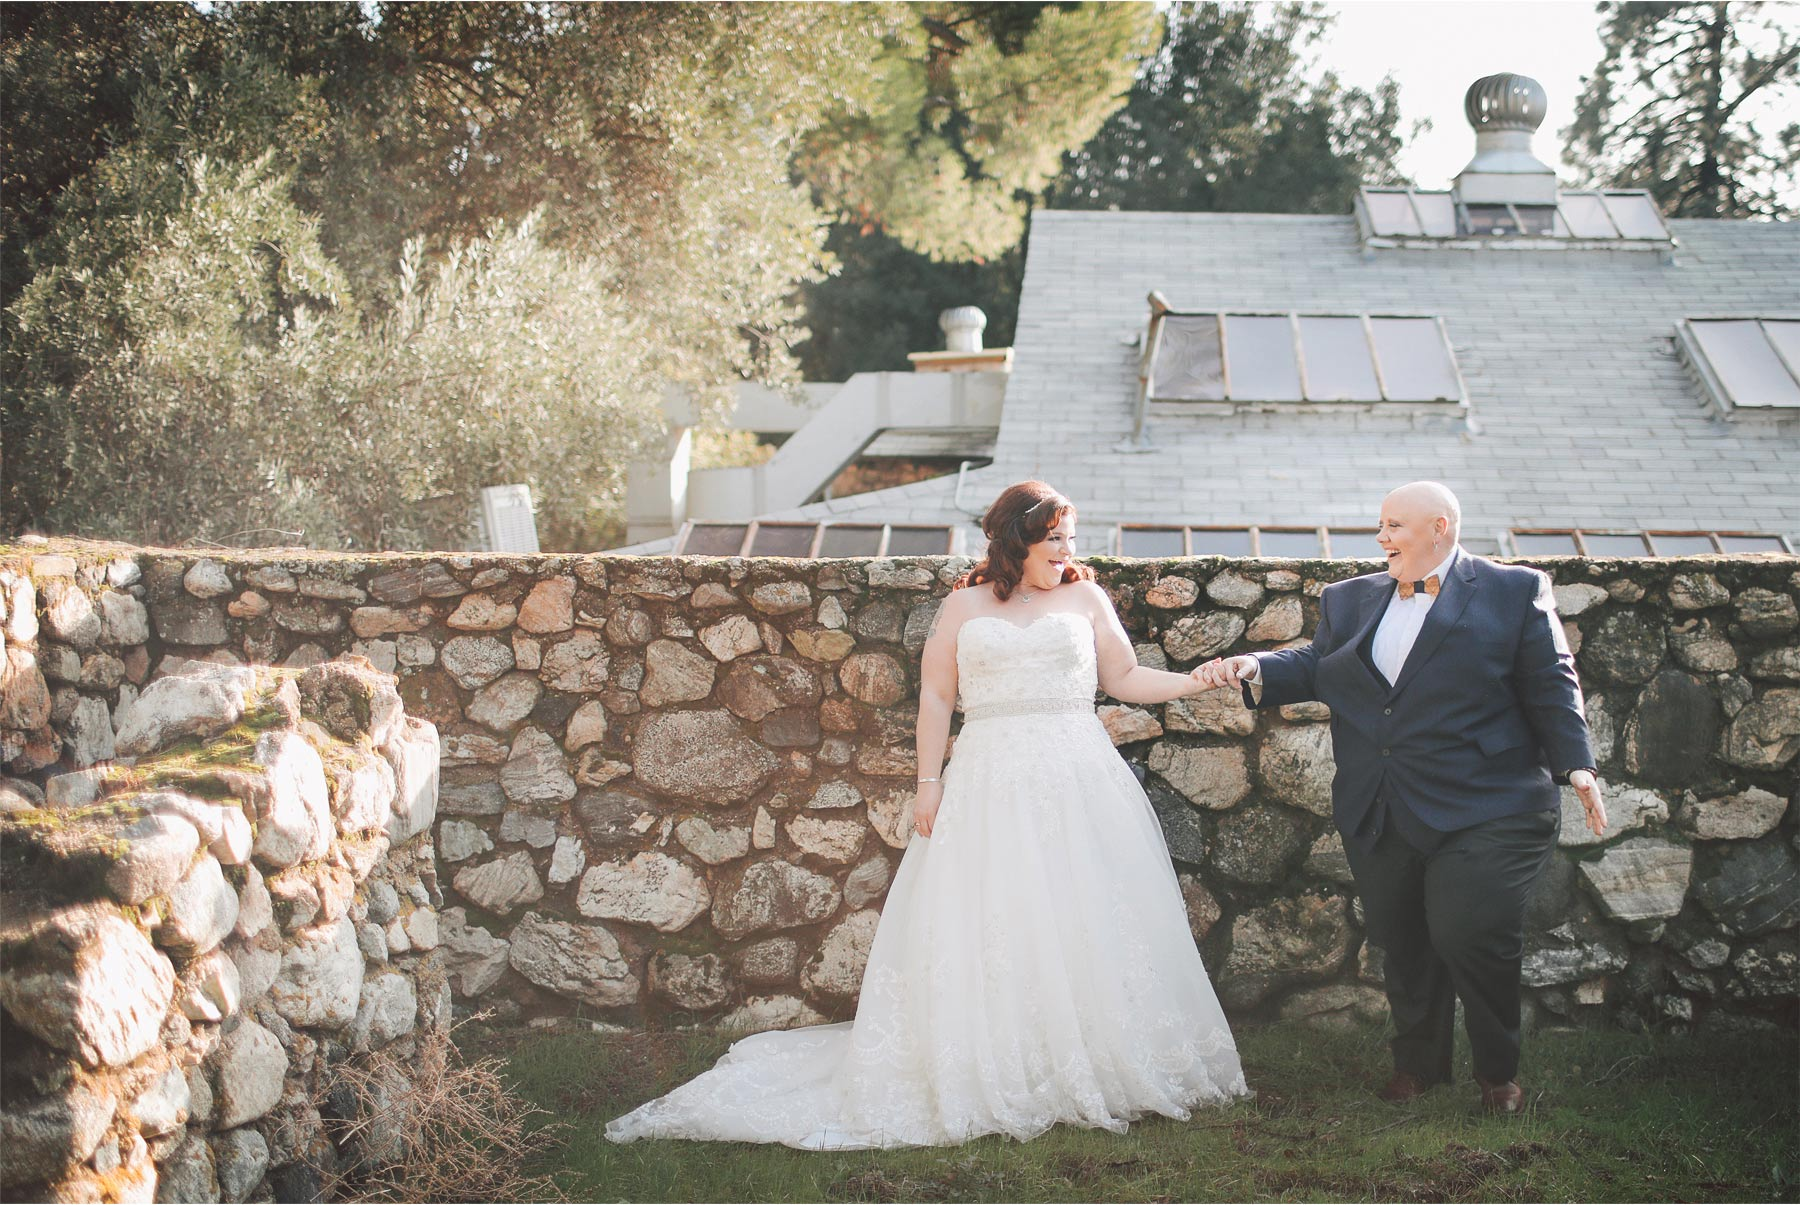 11-Los-Angeles-California-Wedding-Photographer-by-Vick-Photography-Highland-Springs-Ranch-LGBT-Bride-First-Look-Holding-Hands-Rebecca-and-Terri.jpg